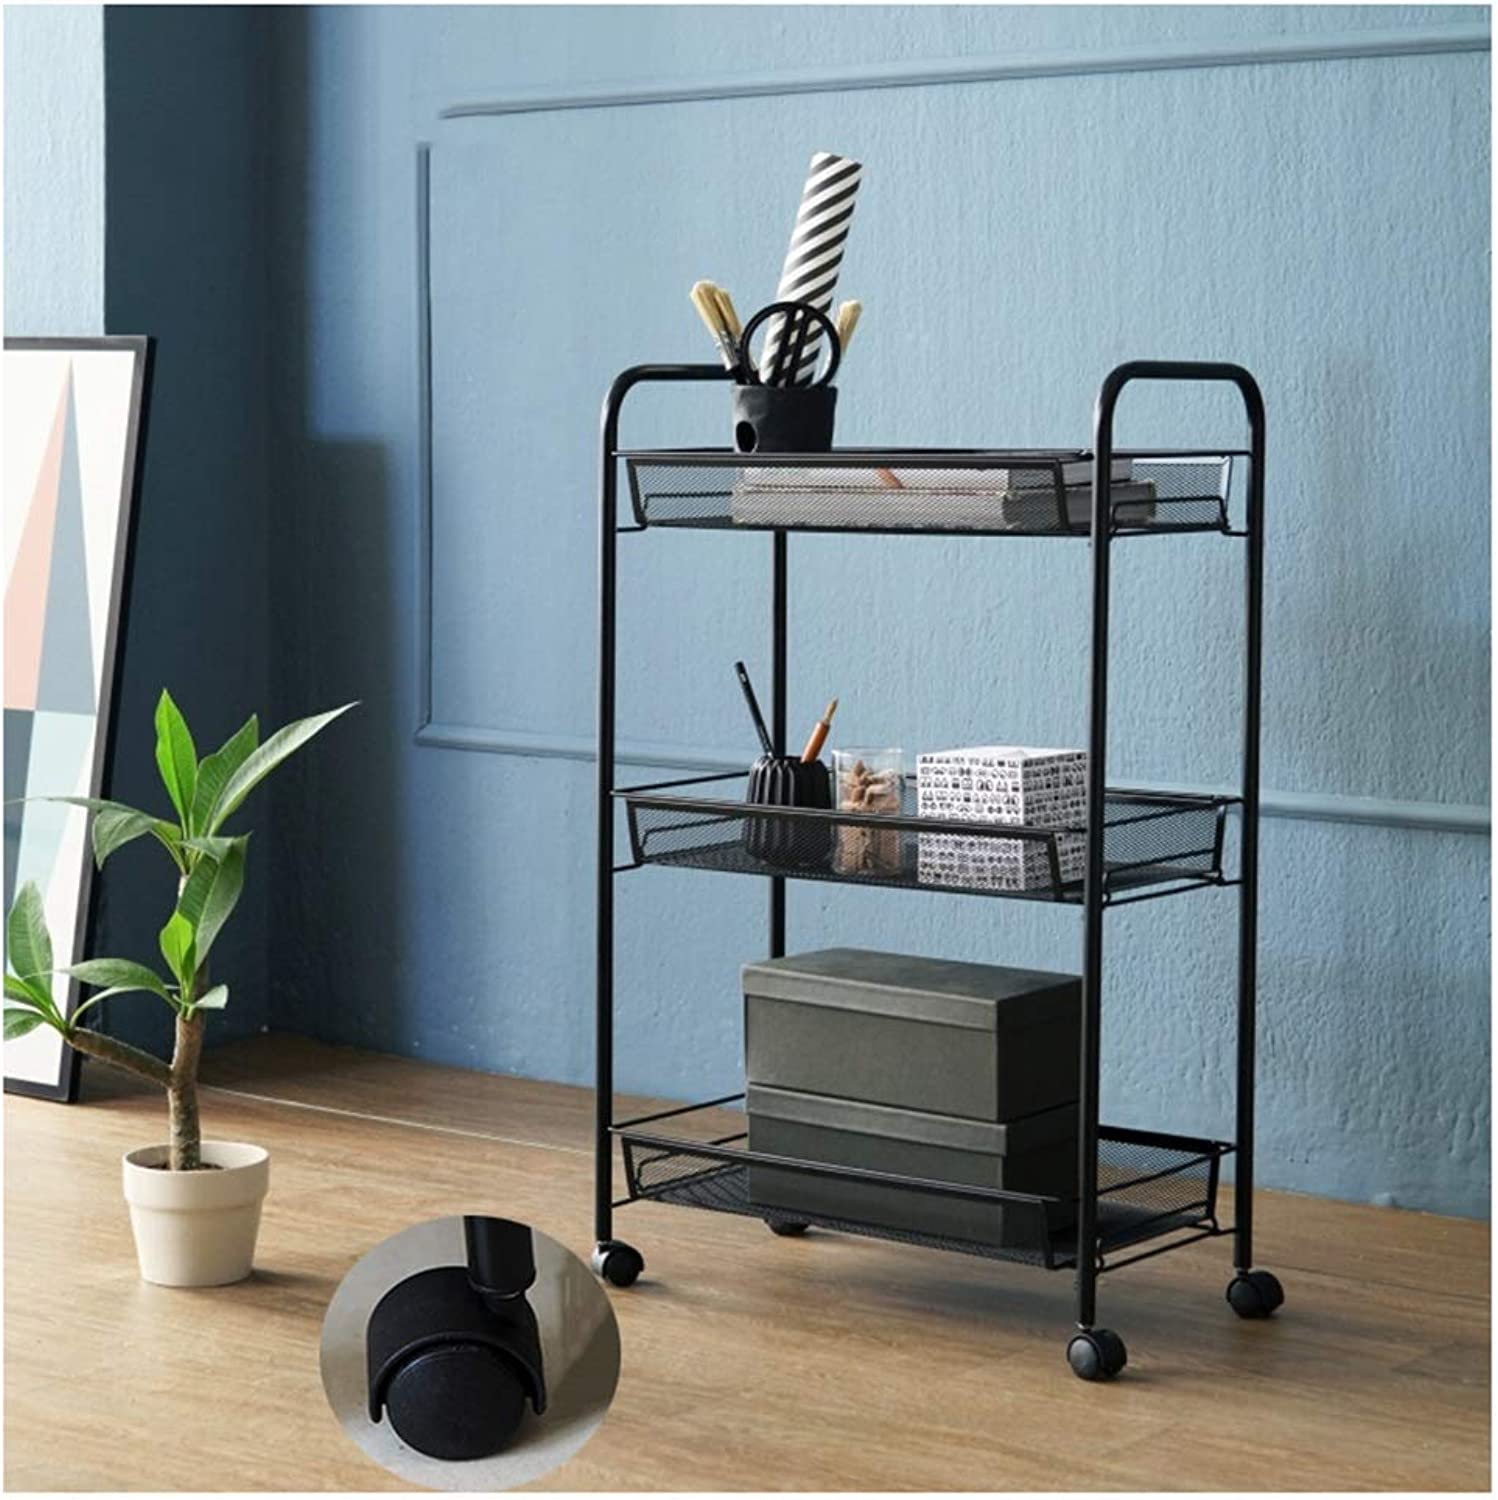 XLong-Home Mobile Trolley Rack Pulley Bathroom Bedroom Storage Shelf Living Room Kitchen Clips Racks 3 Layers